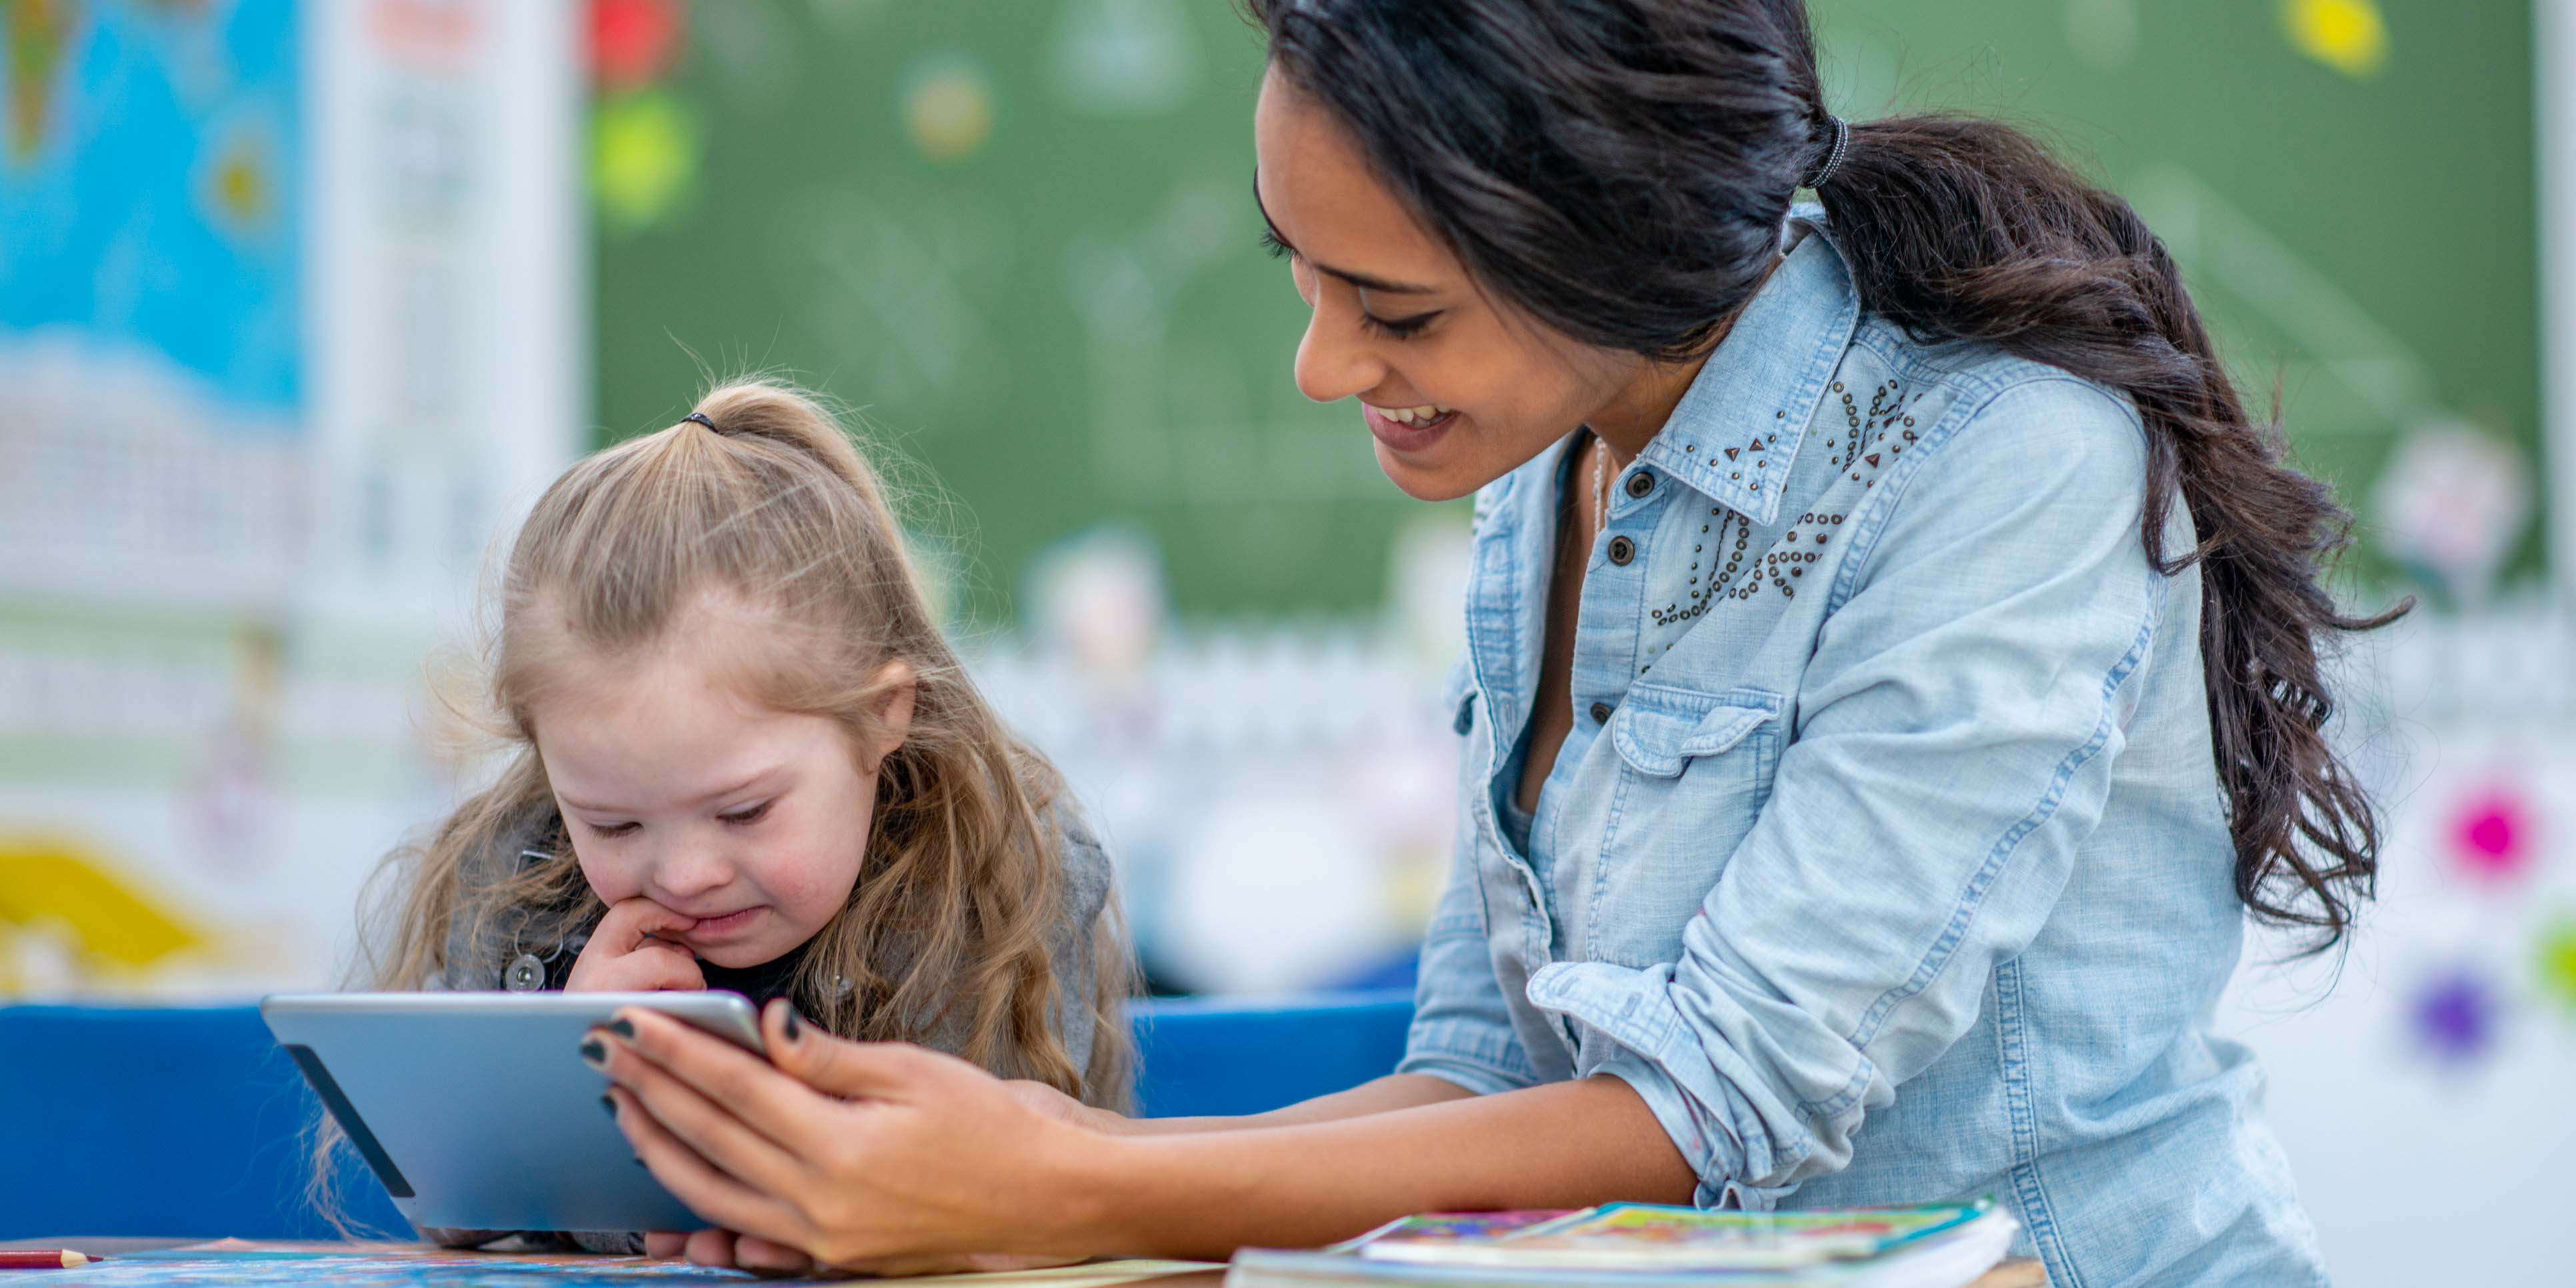 female holding an ipad while child looks at it